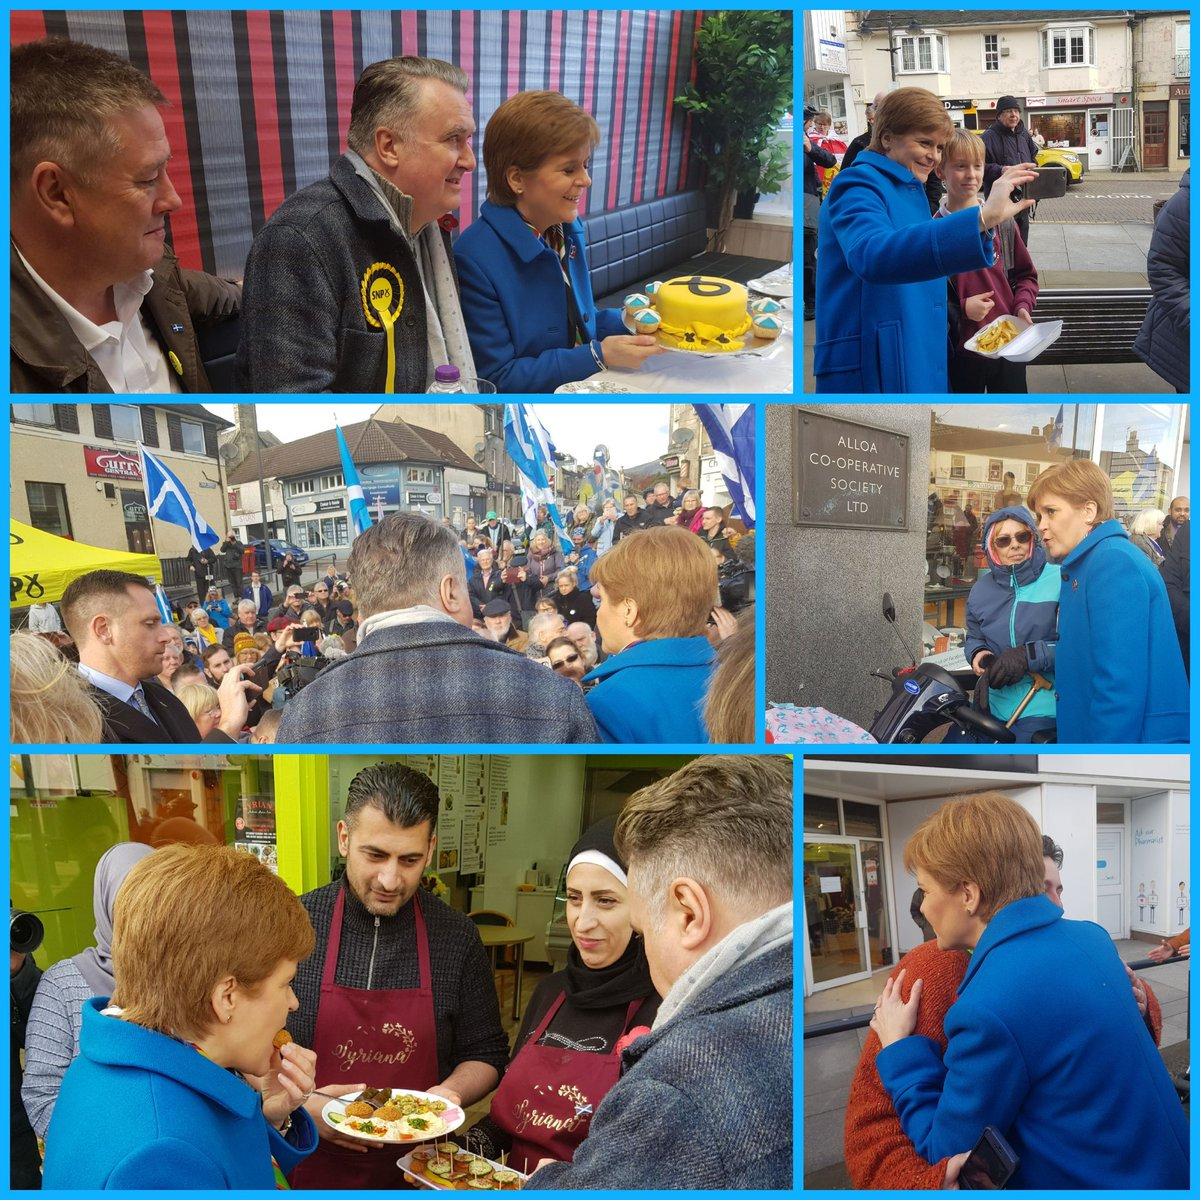 Falafel & cakes made for a yummy campaign visit to Alloa with @NicolaSturgeon & @theSNP candidate @MrJohnNicolson...@KeithBrownSNP came along as official cake taster 🍰 #VoteSNP #GE2019